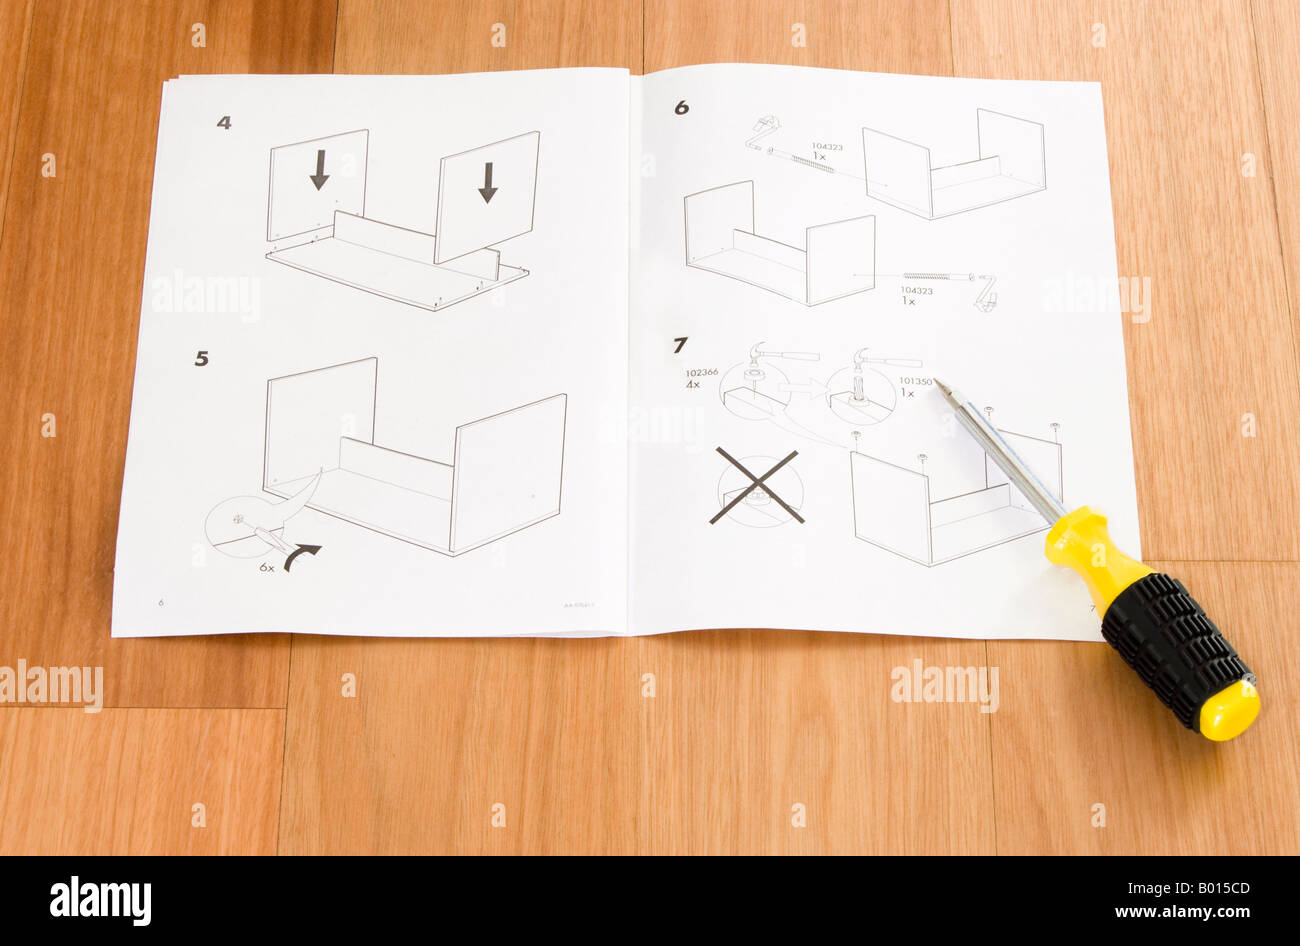 self assembly ikea furniture instructions and screwdriver stock photo royalty free image. Black Bedroom Furniture Sets. Home Design Ideas